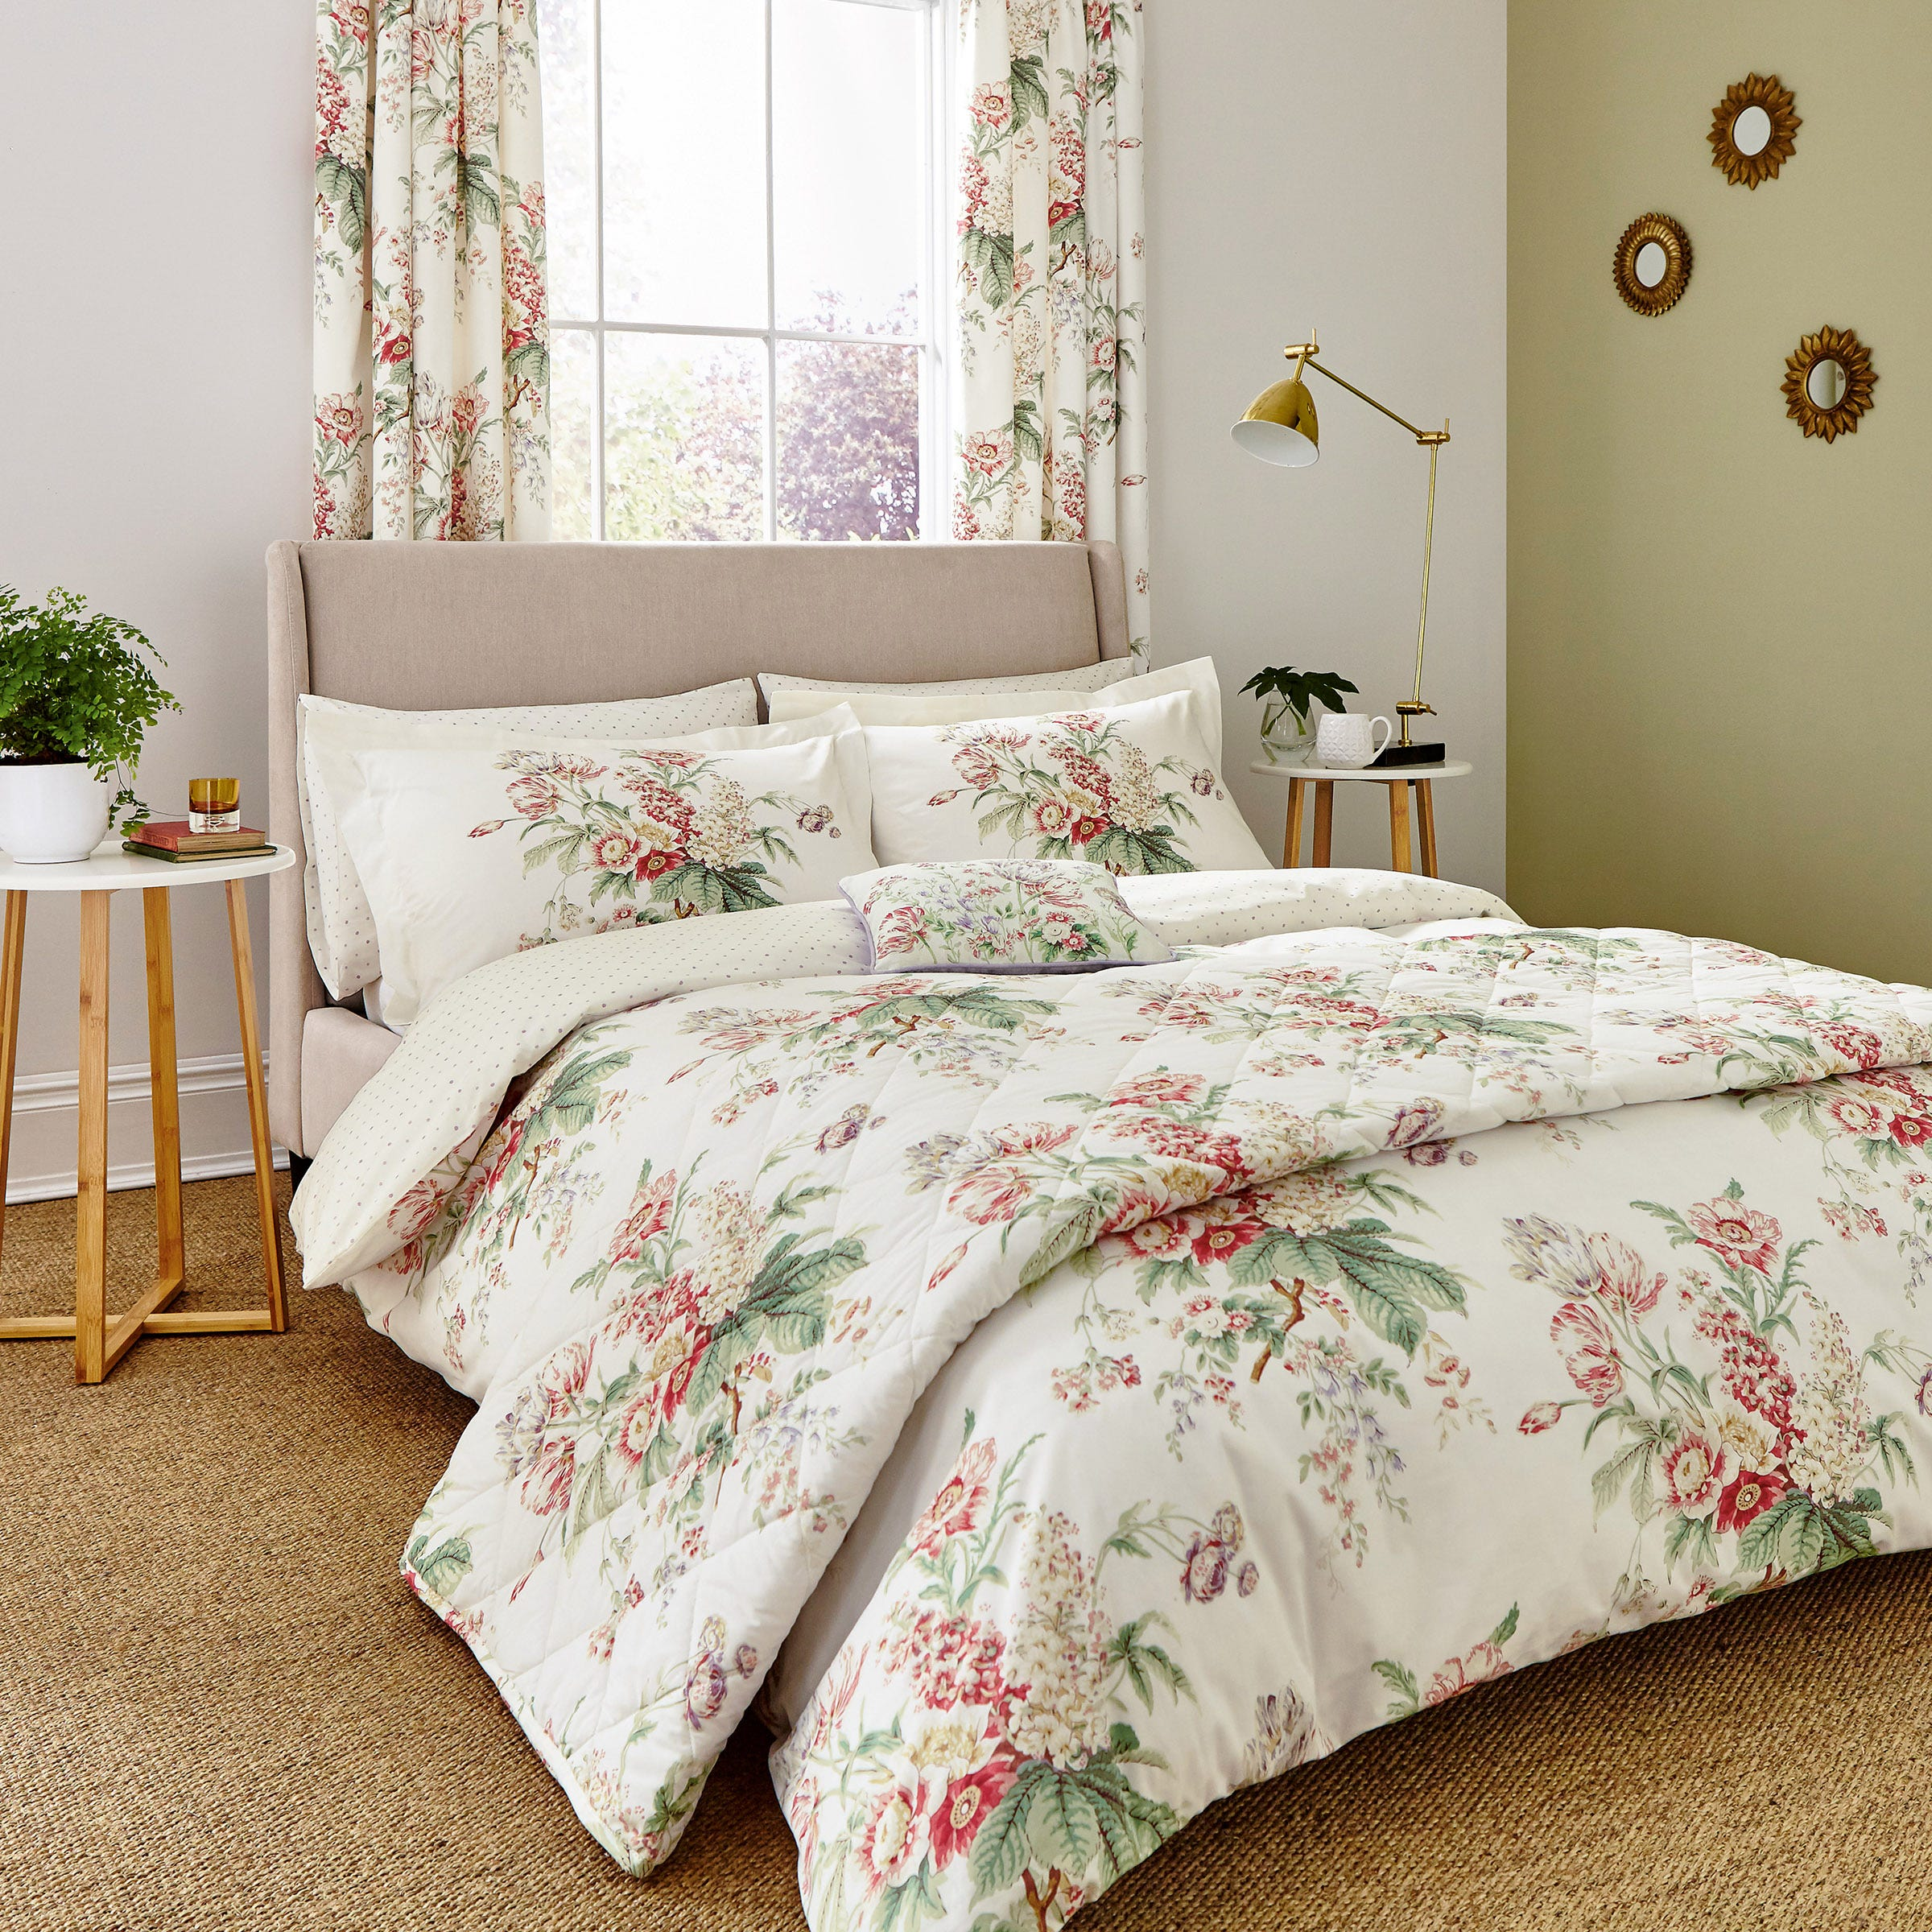 Sanderson Bedding Tournier Single Duvet Cover Strawberry